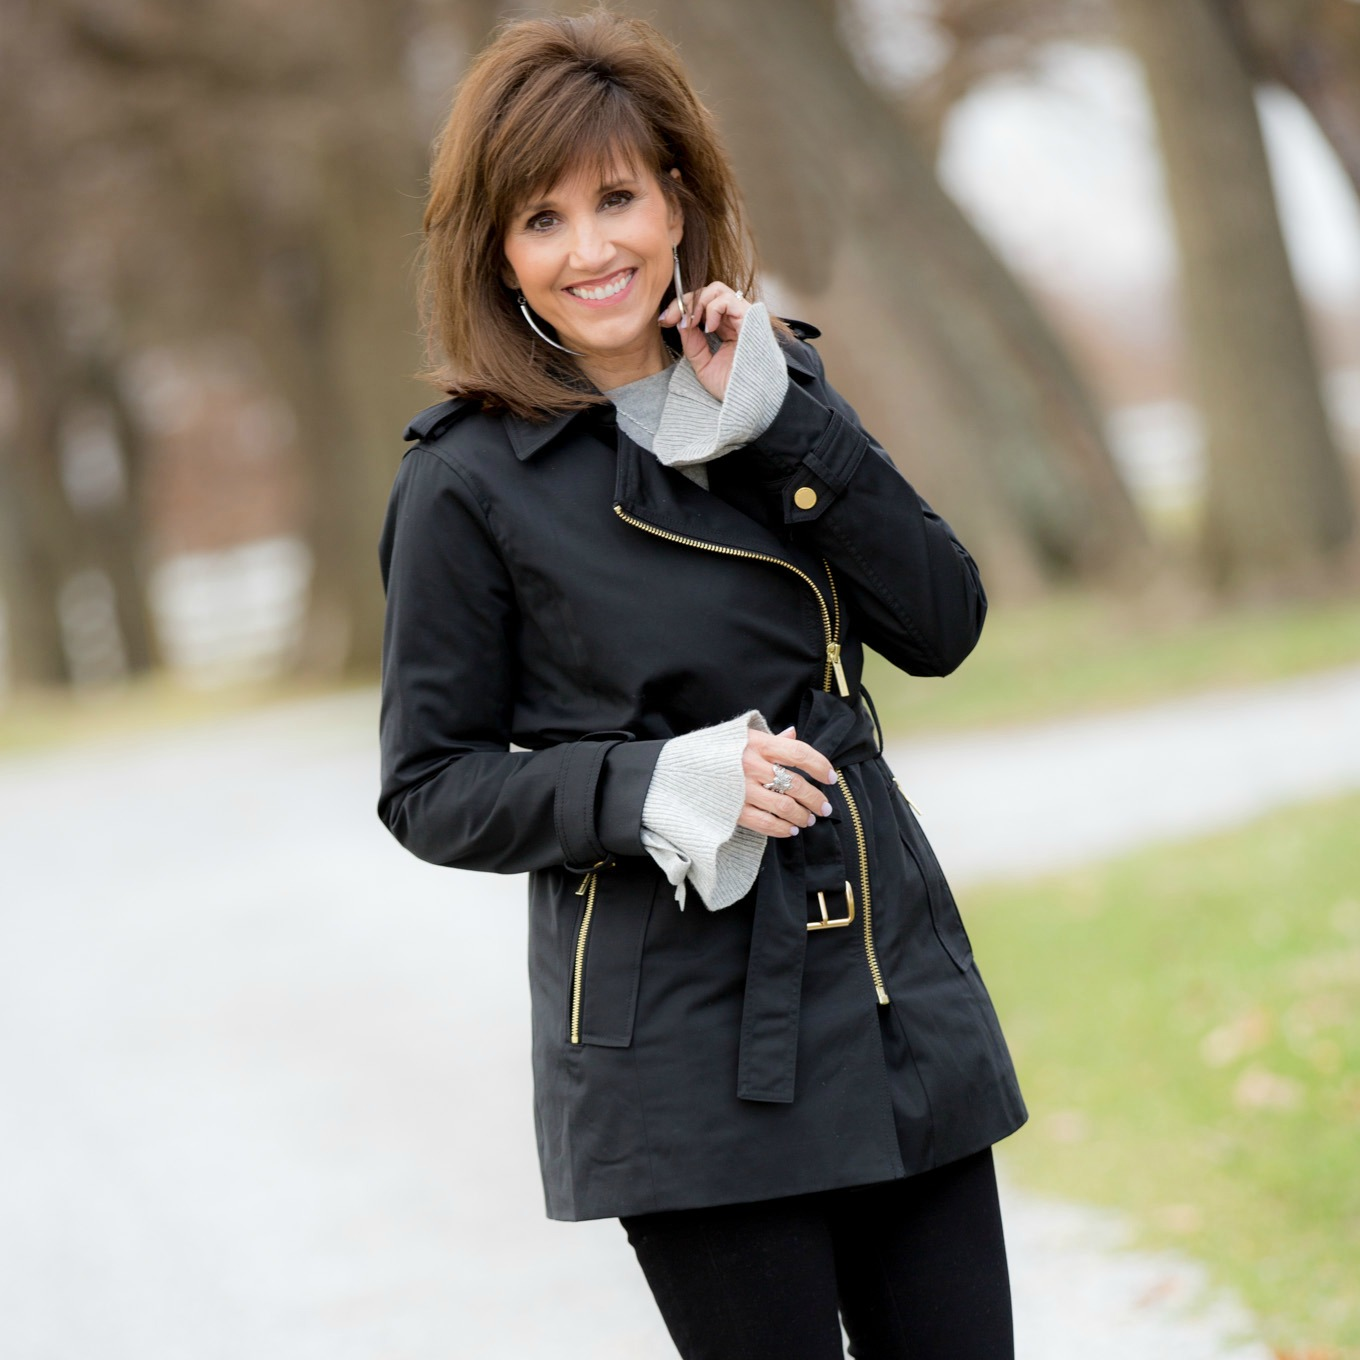 Fashion blogger, Cyndi Spivey, styling a black trench coat from Macy's.